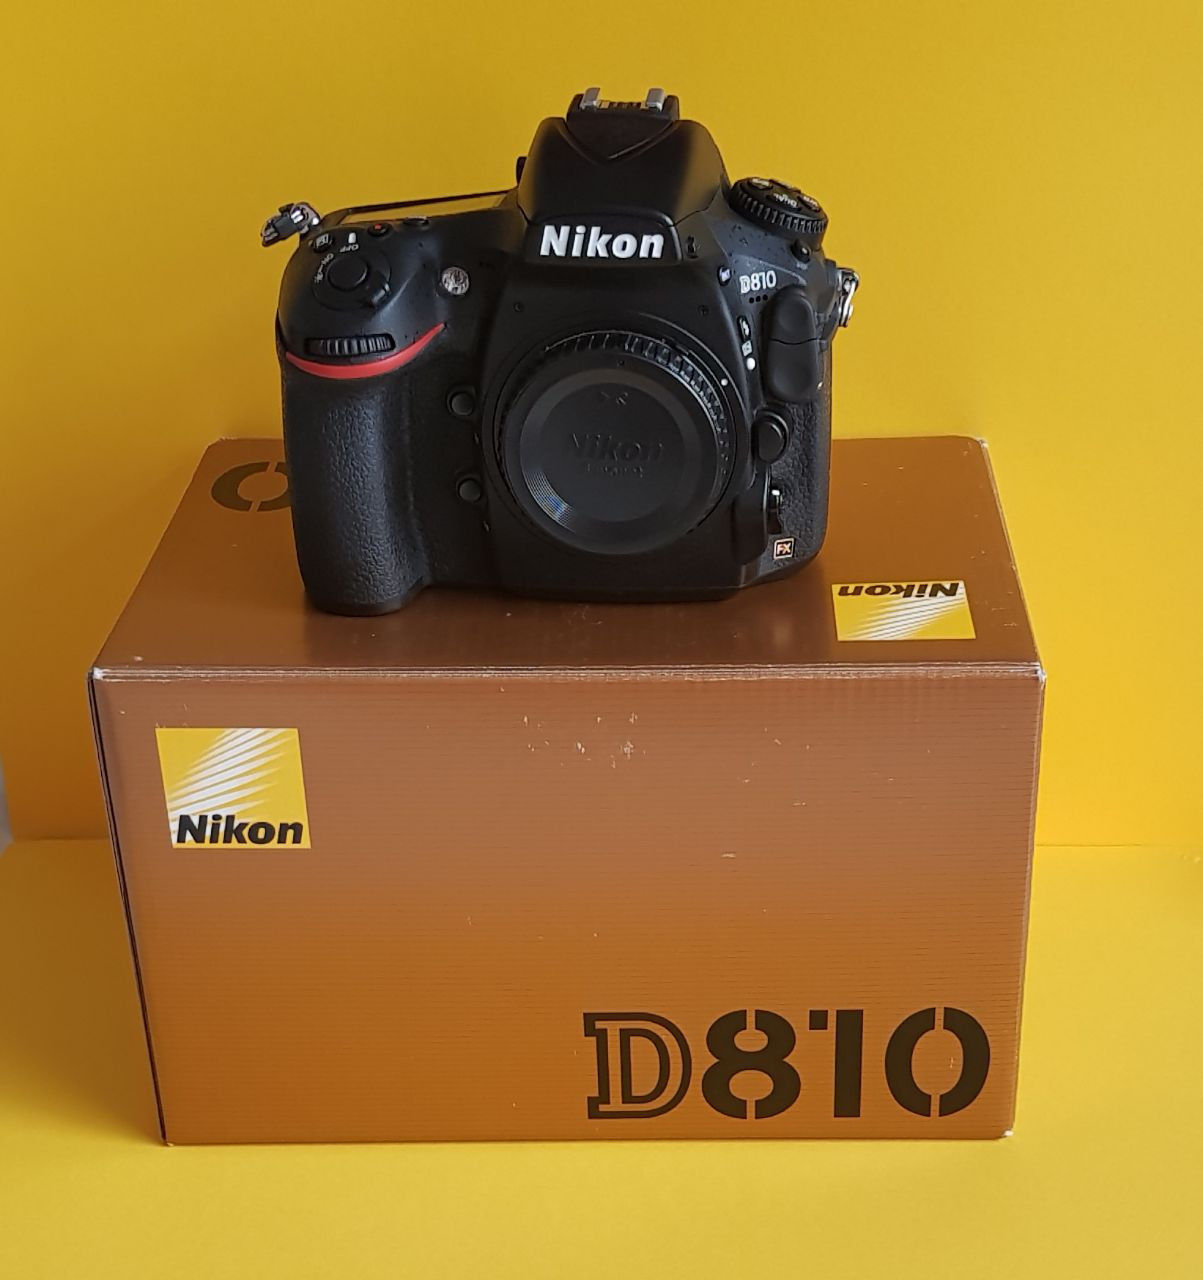 Camera Nikon D 810 Body 36.3 MP DSLR (Kauf:4/2016)